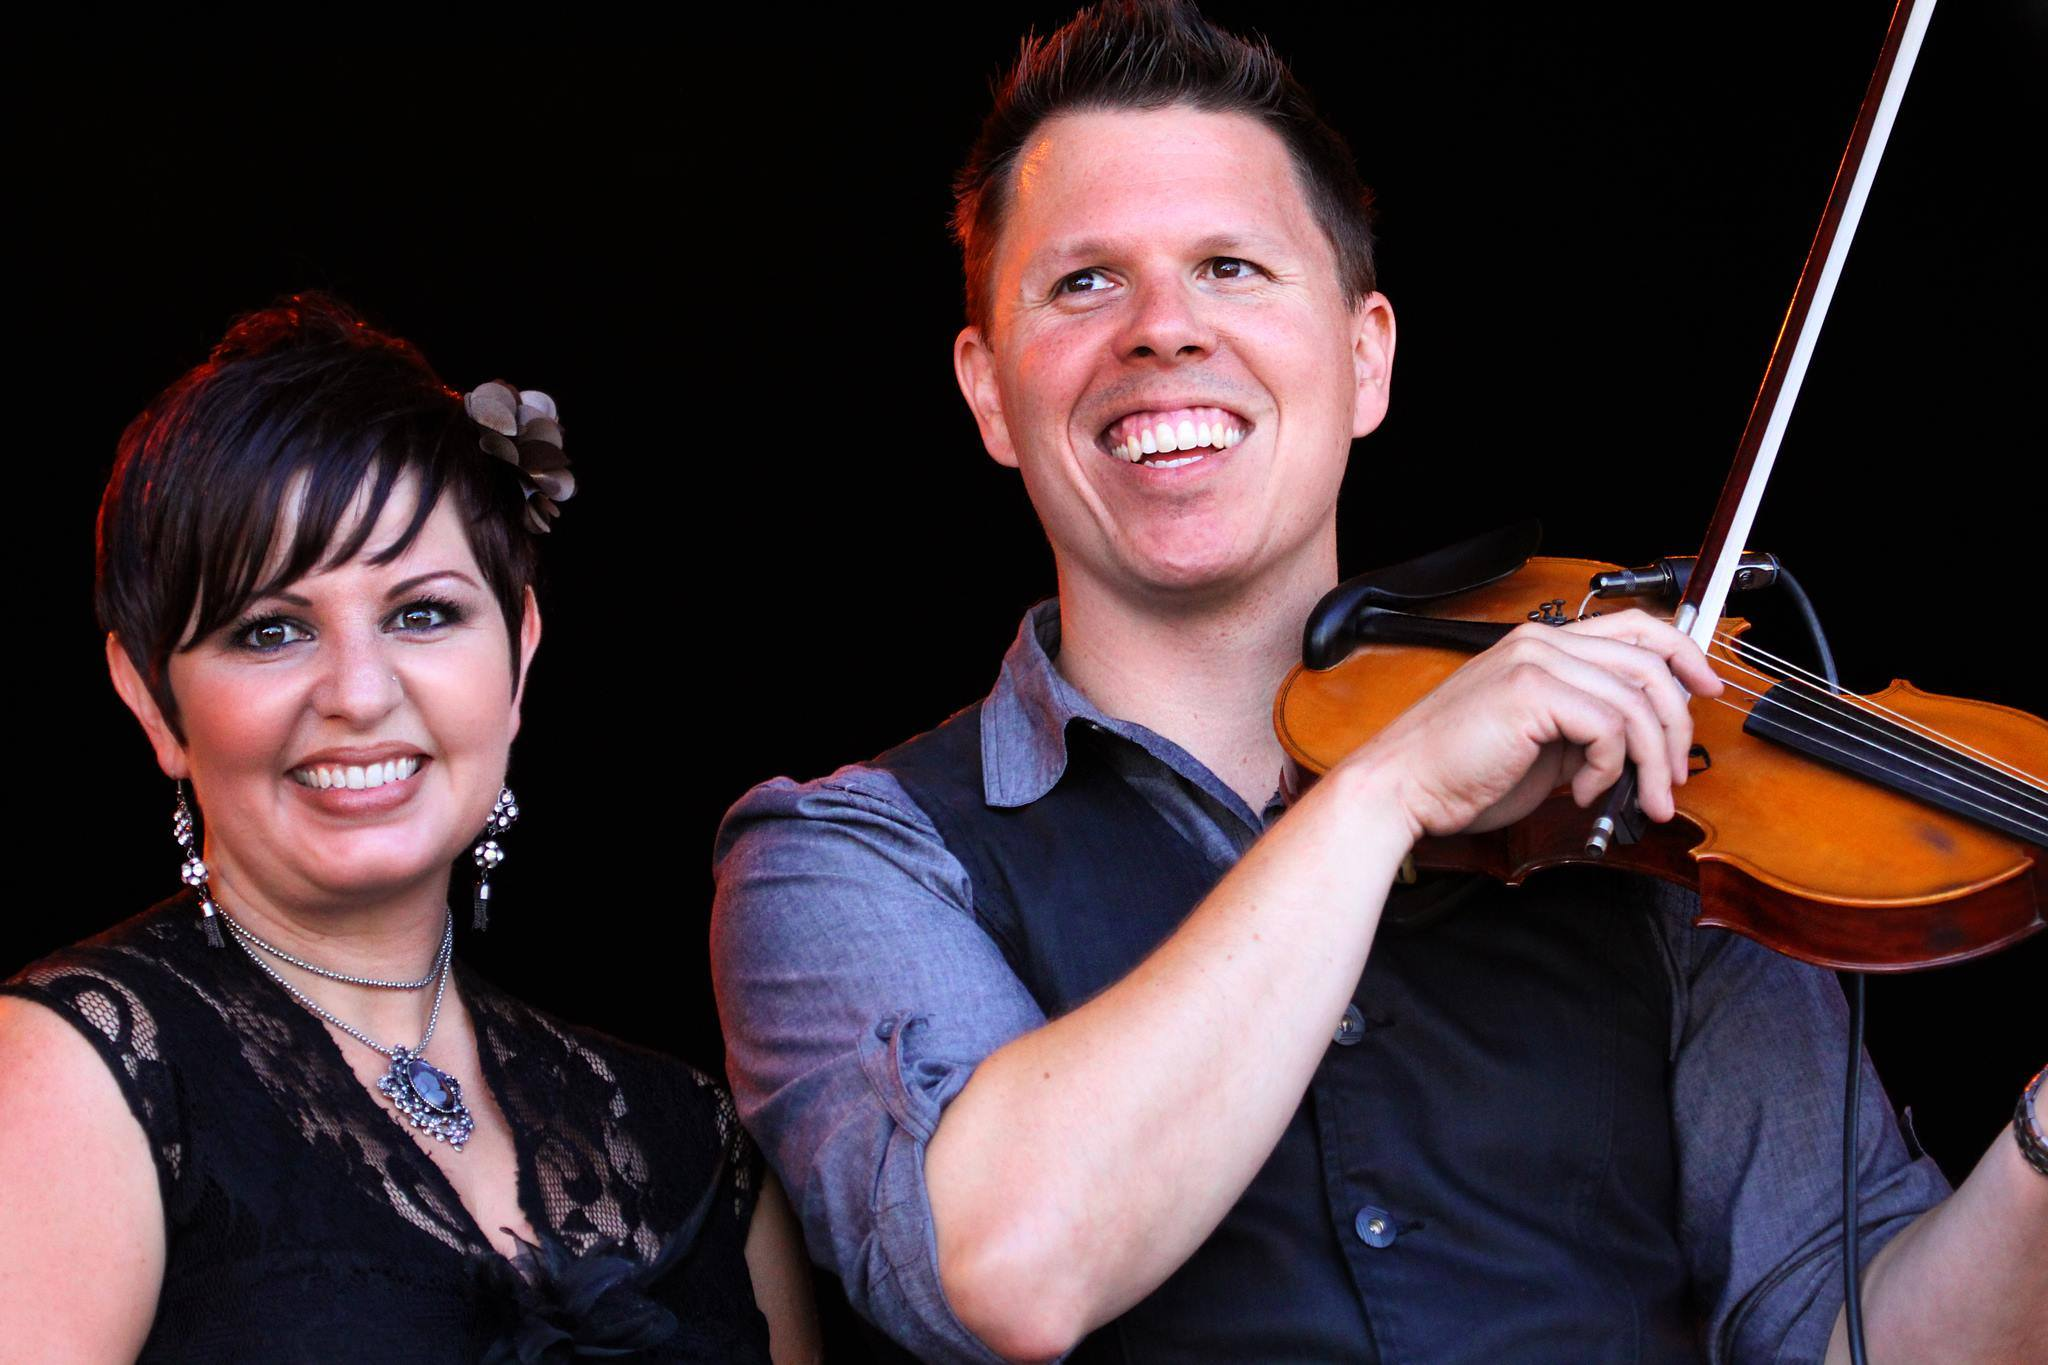 Monday Night Cabaret featuring Stacey Lee and Shane Guse at Patent Social